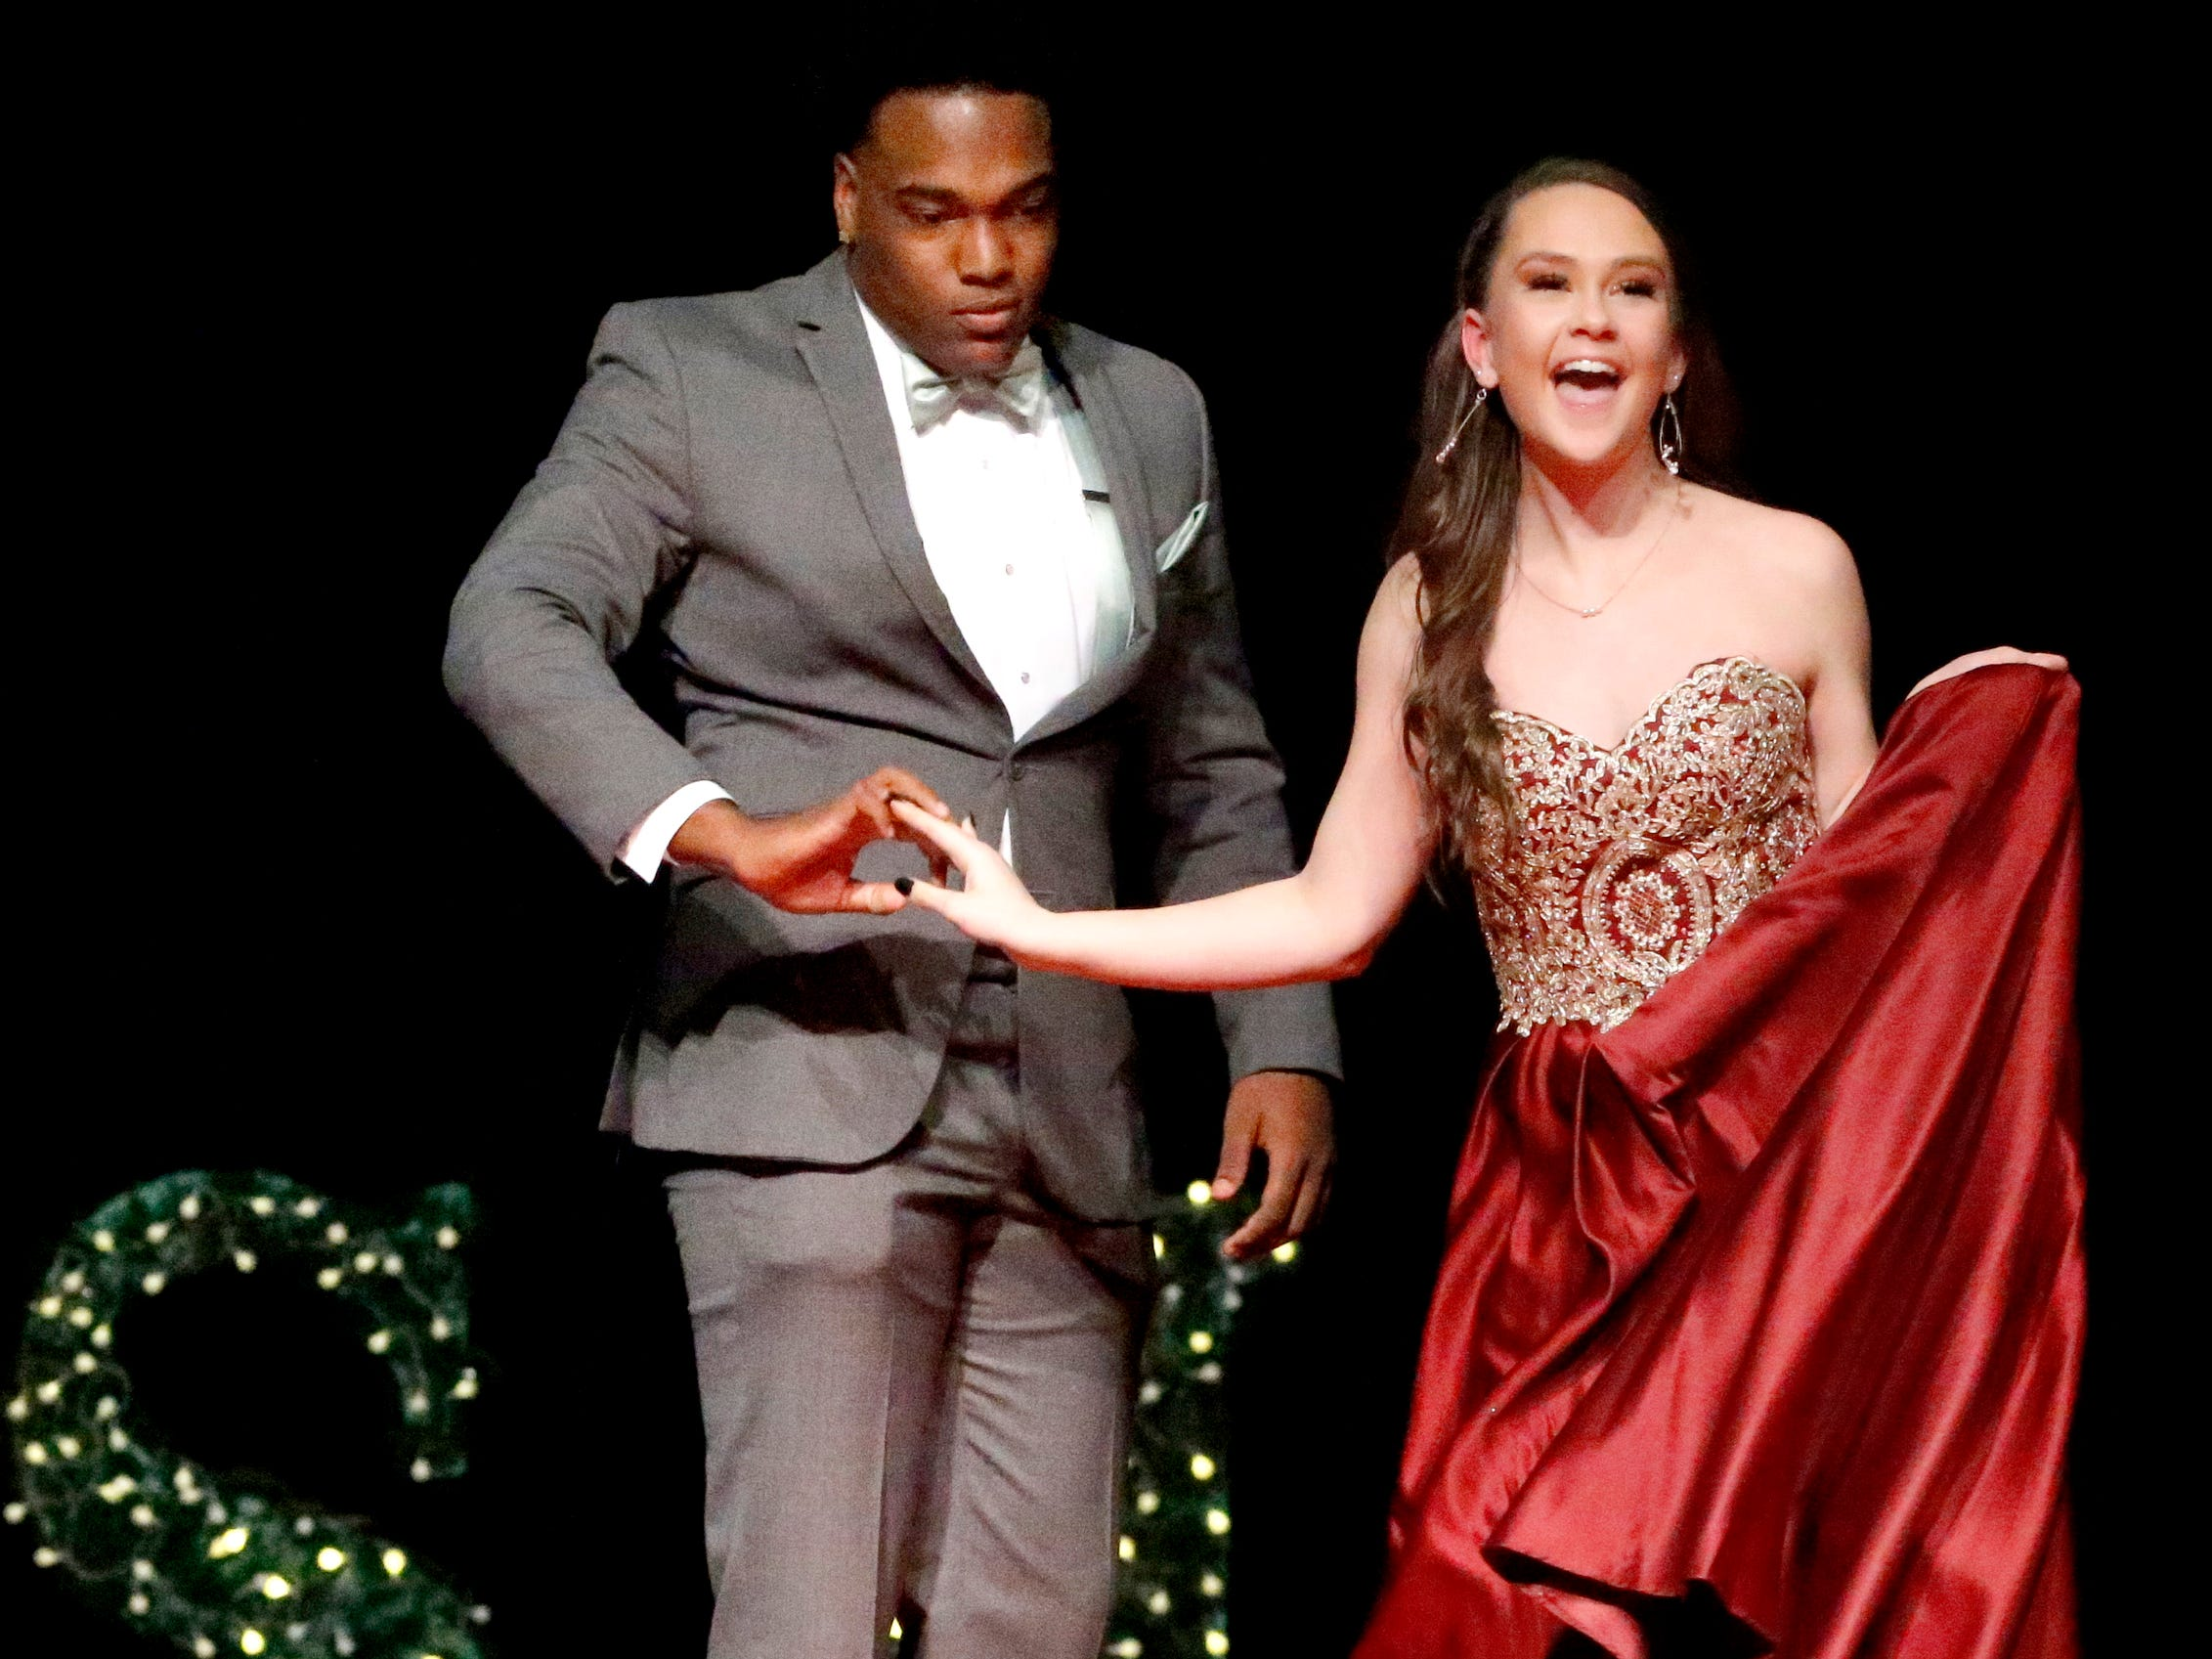 Shamar Vanzant, left and Jinni McCullough, right show off the latest in prom fashions during the Siegel Prom Fashion show on Thursday, Feb. 14, 2019.